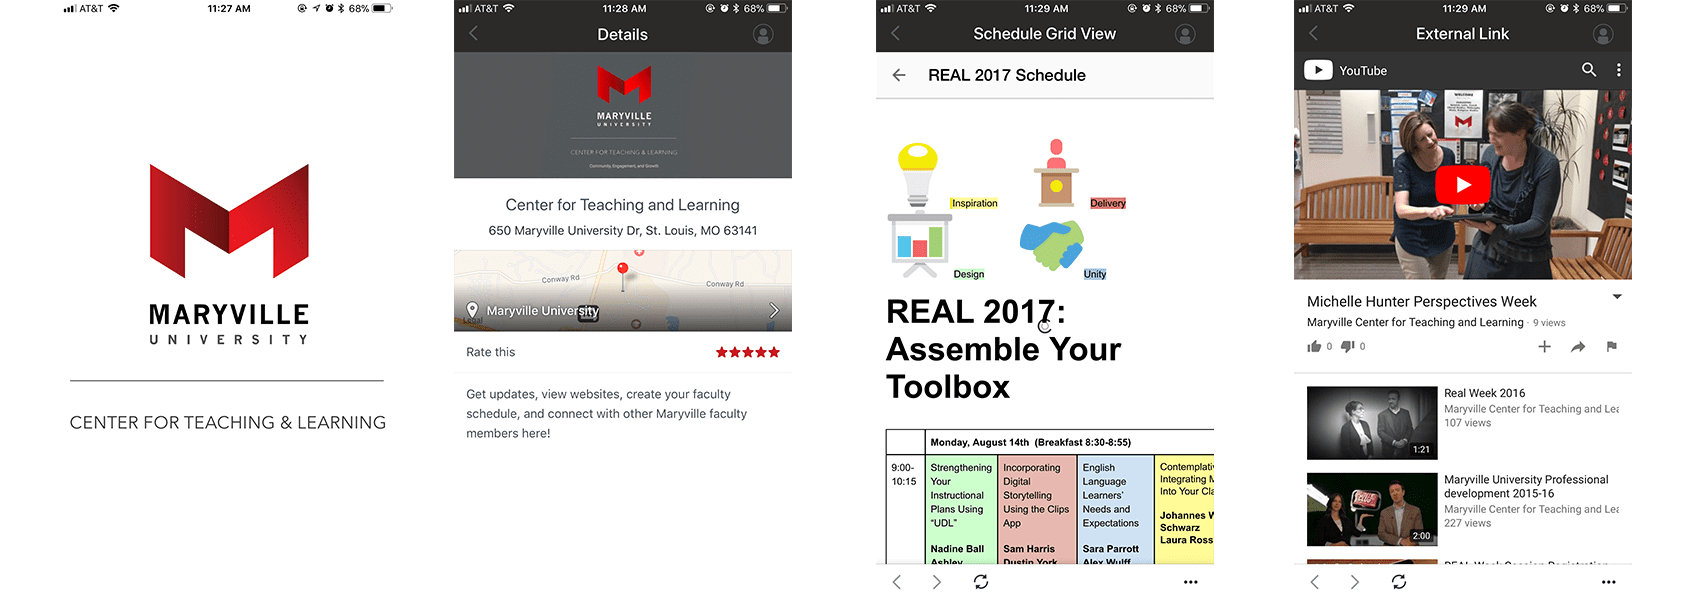 Center for Teaching and Learning app